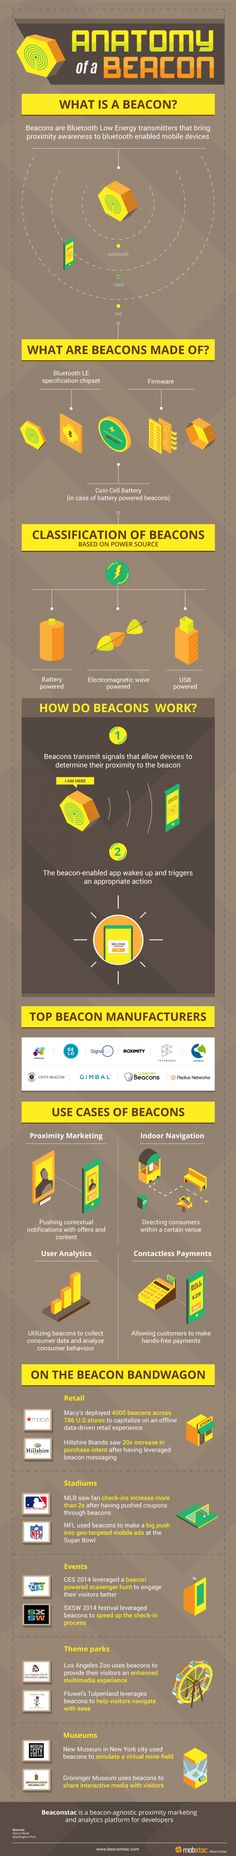 The buzz around iBeacon technology continues to rise. Big brands like Macy's, NFL, Lord & Taylor and more have embraced beacon technology. Beacon Technology, Retail Technology, Future Technology Trends, Future Trends, Anatomy, Infographics, Infographic, Info Graphics, Visual Schedules